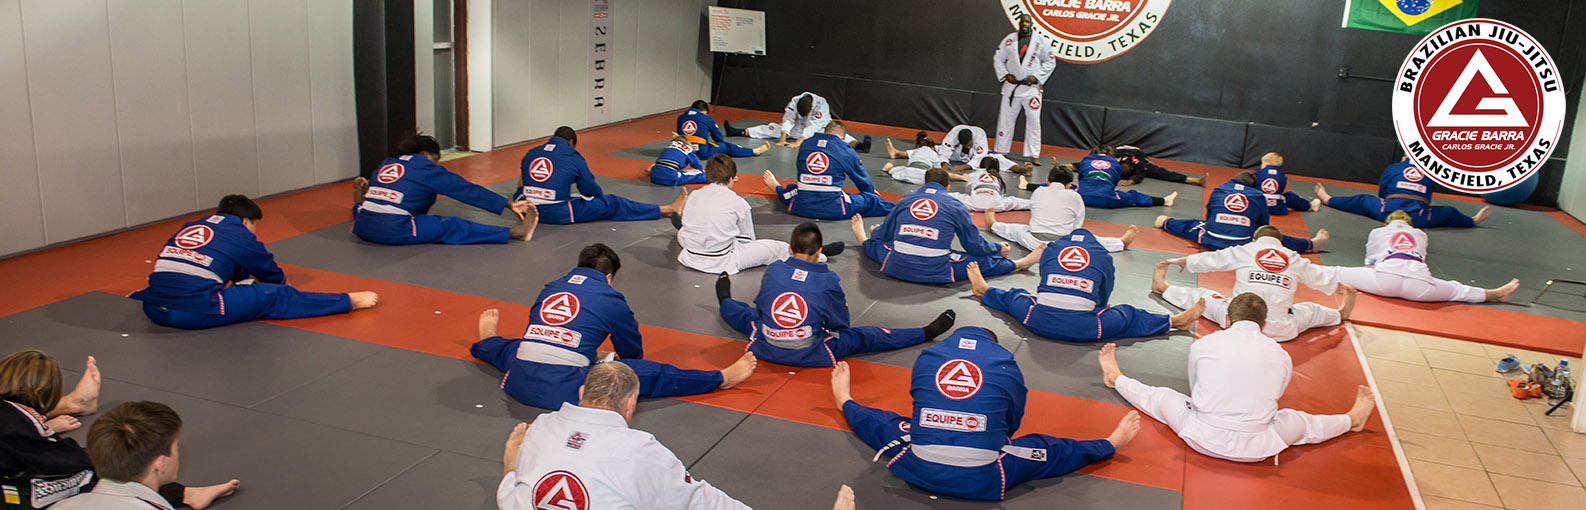 Beginner Classes at Gracie Barra Mansfield & Arlington TX